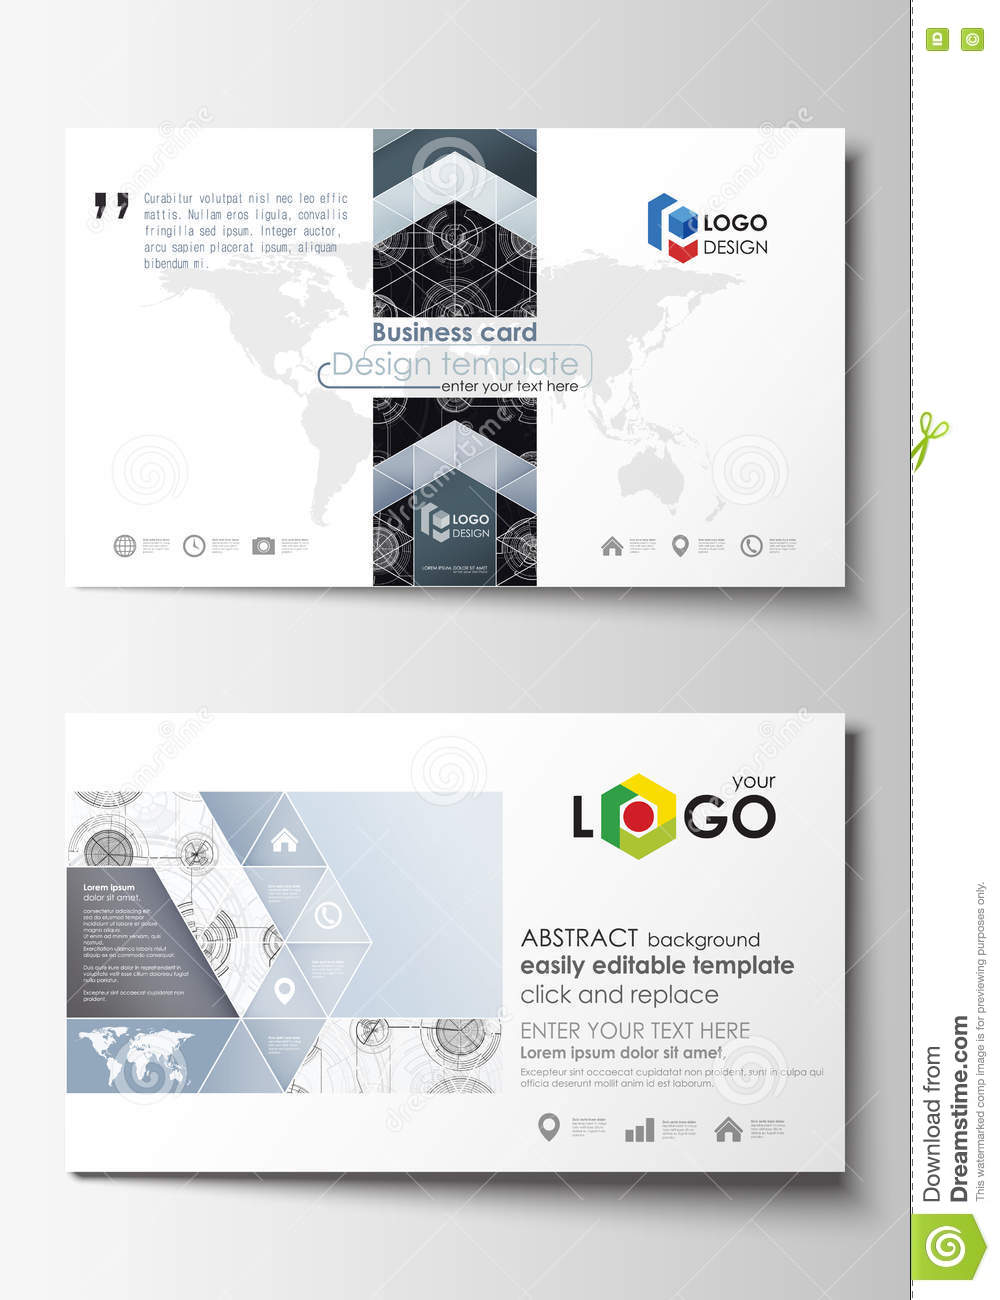 Business card templates easy editable layouts flat style template business card templates easy editable layouts flat style template vector illustration high tech design connecting cheaphphosting Gallery